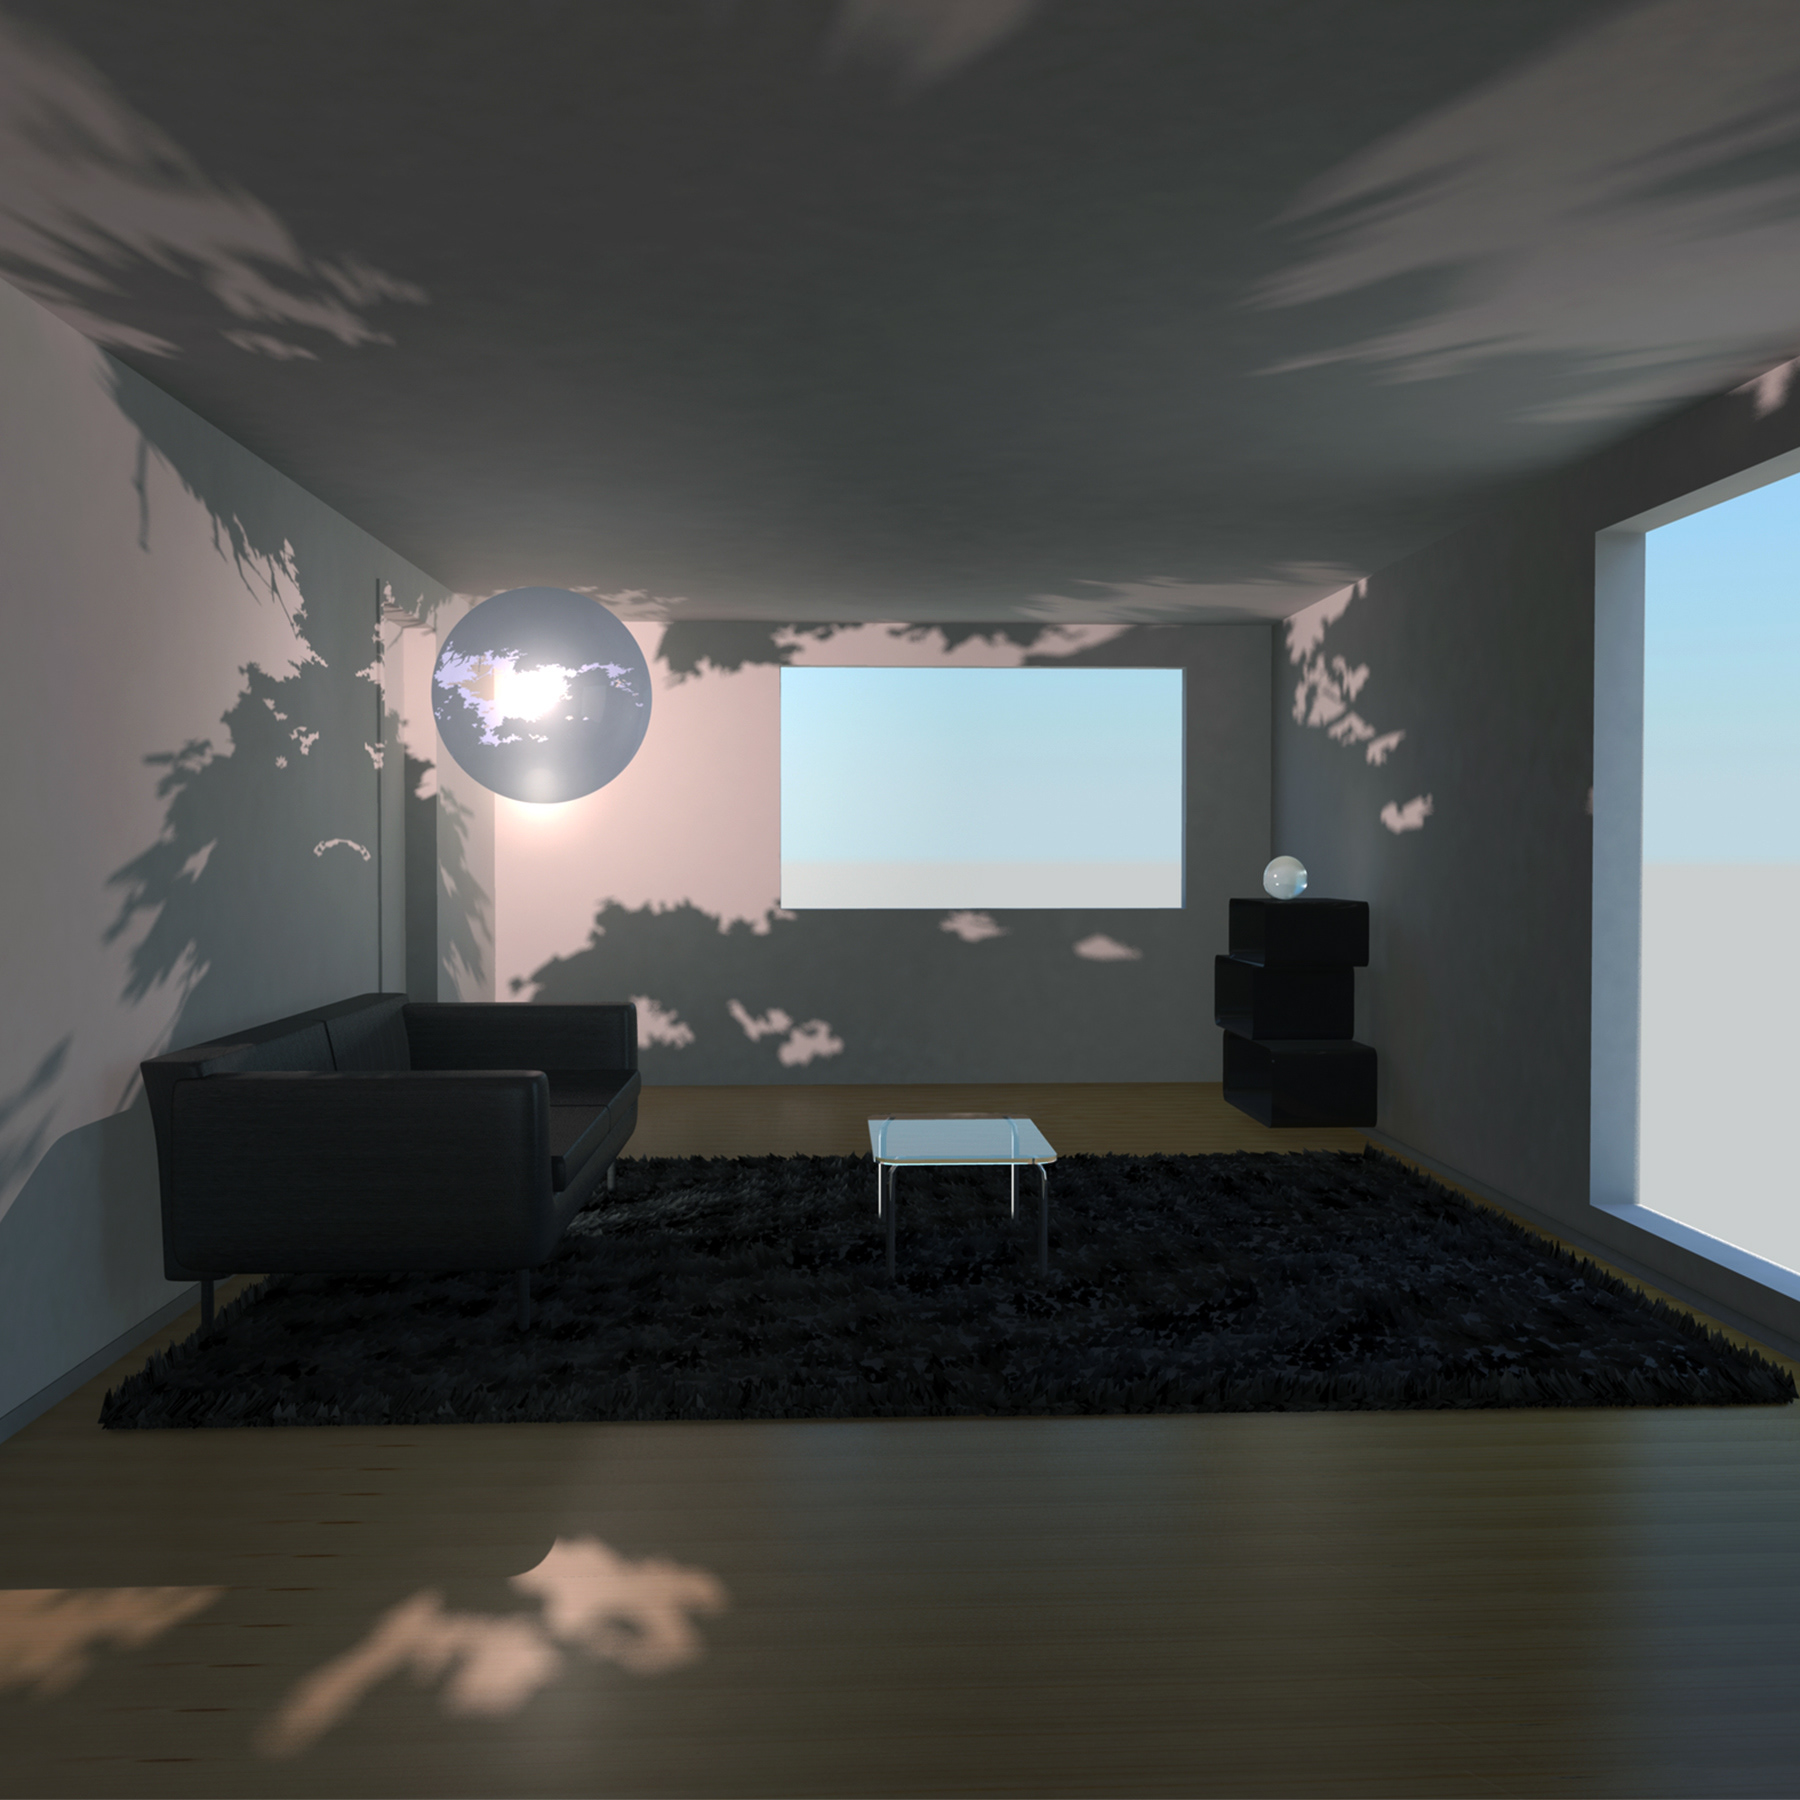 Living room with lamp mockup